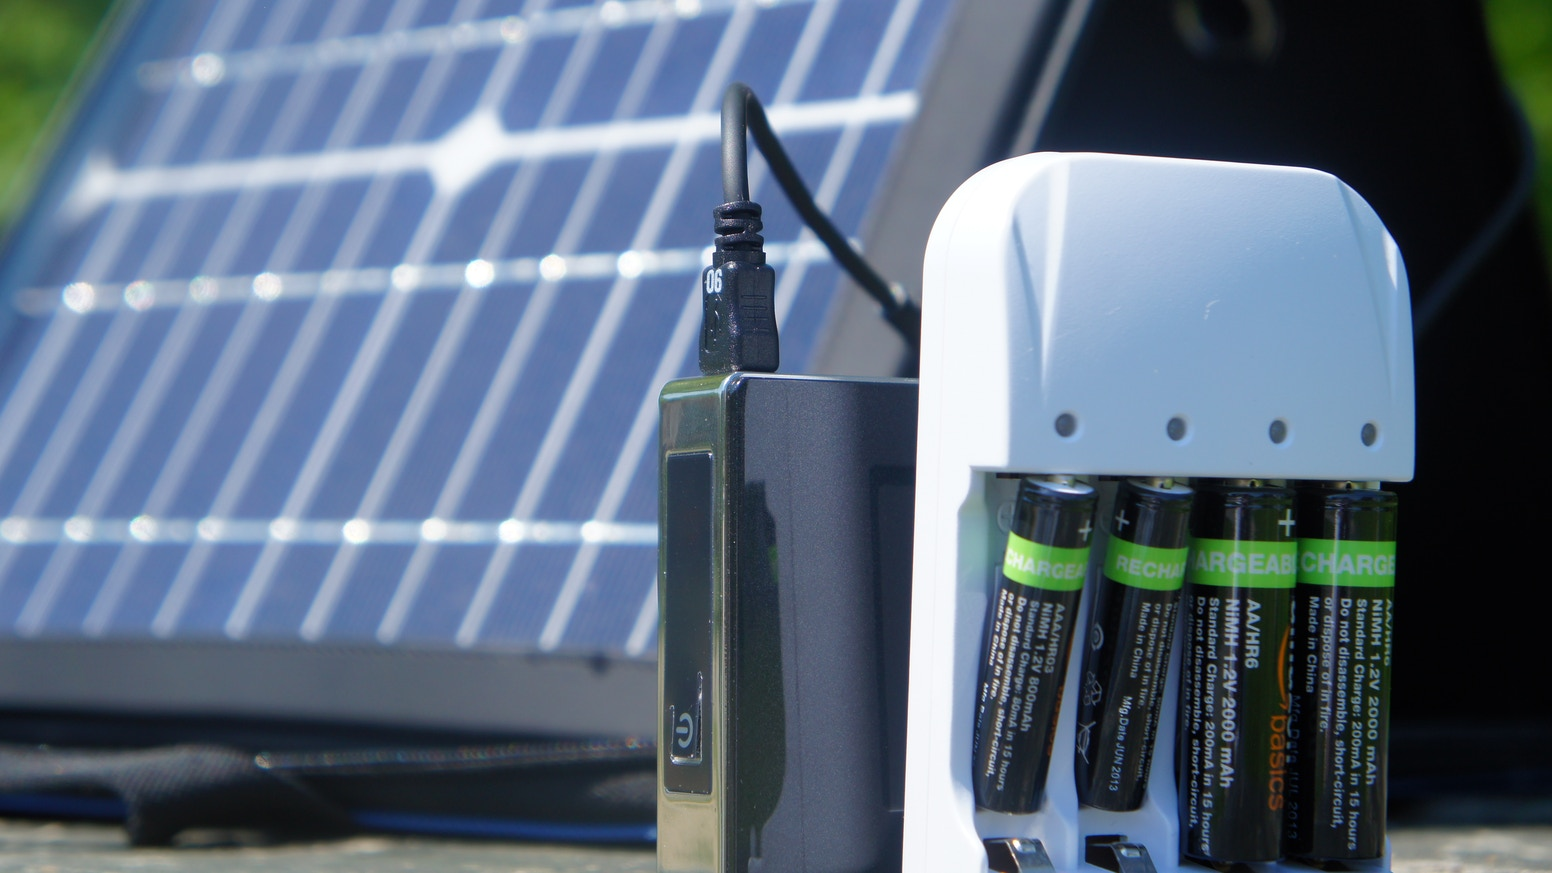 Suncache A Powerful And Flexible Solar Charger Platform By Don Results For Circuit Writer Pen My Most Charging Solution To Date Charge Directly From The Sun Store